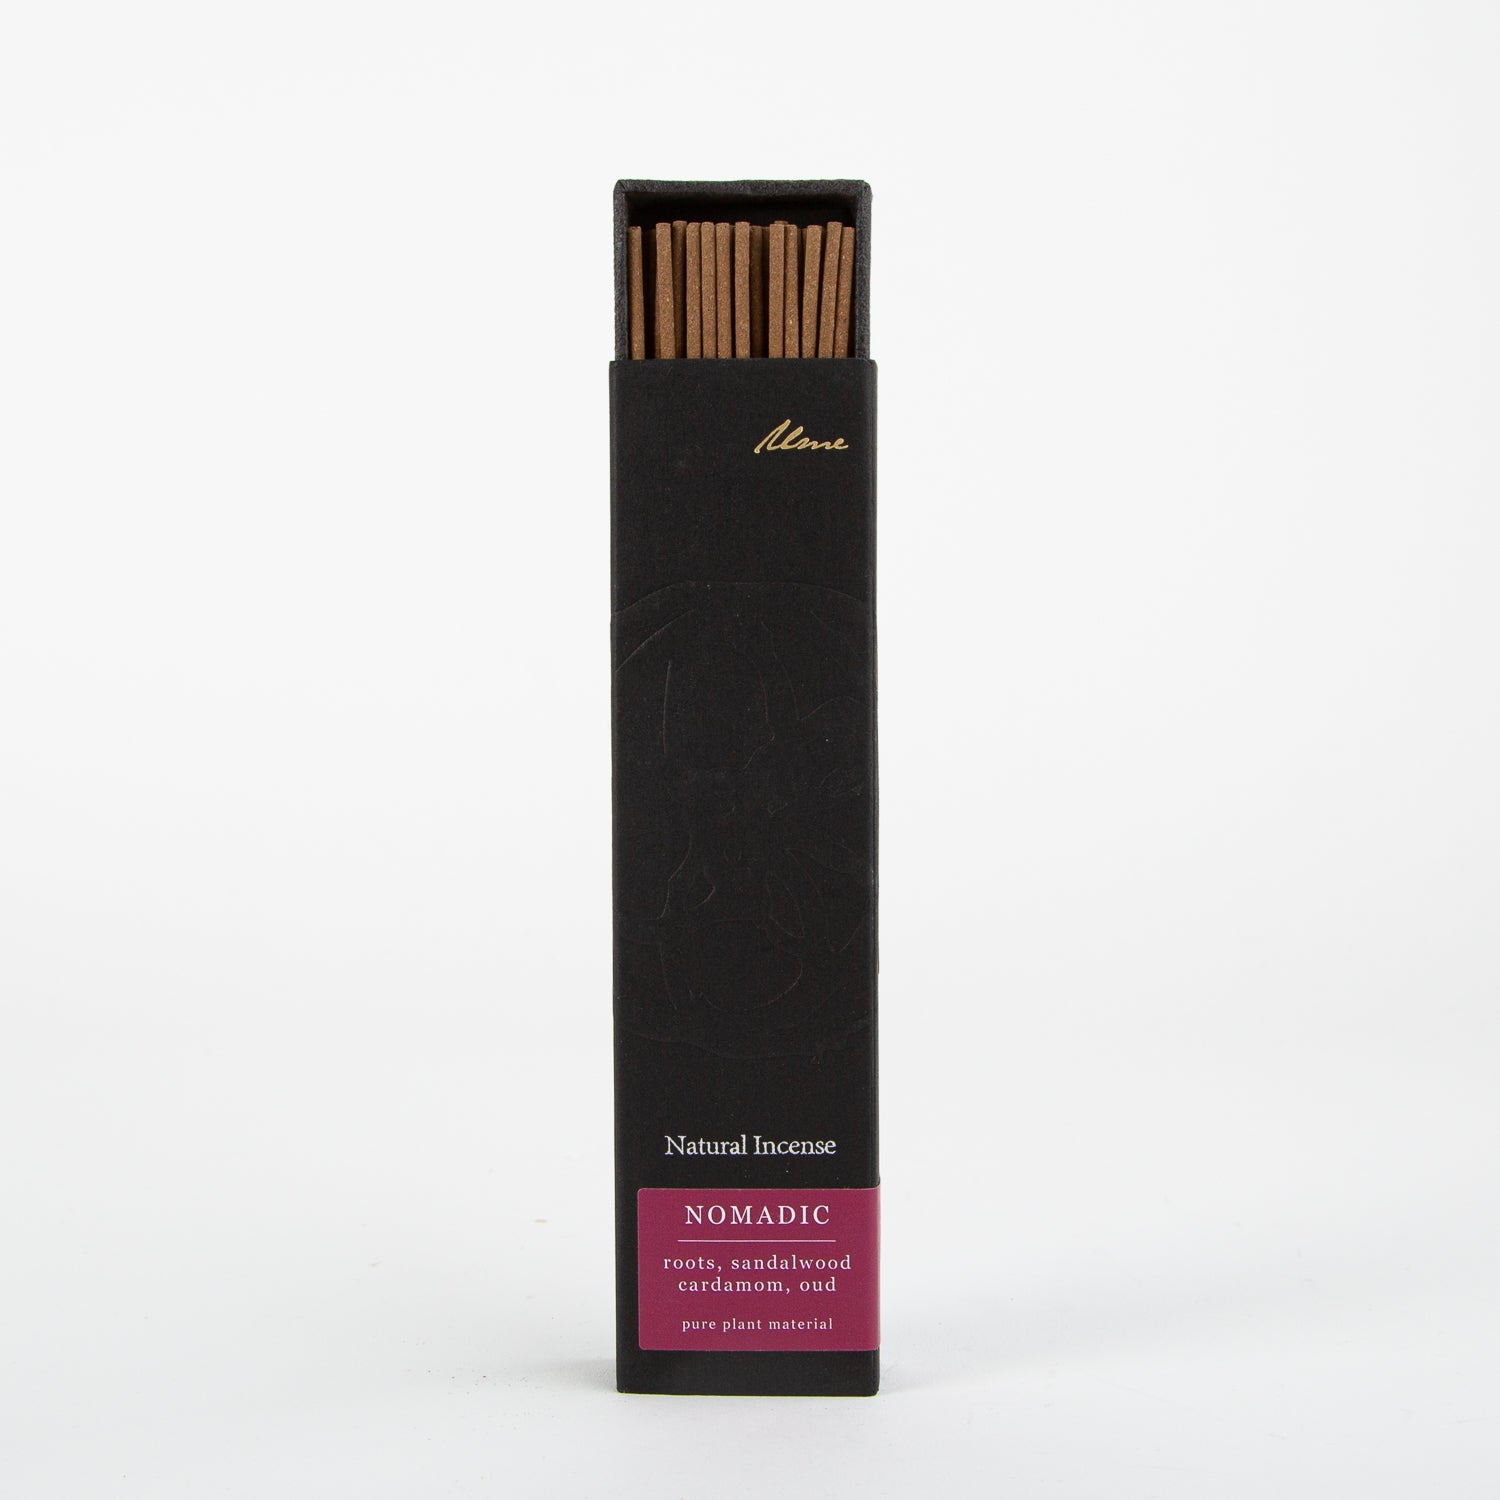 nomadic natural incense sticks by Ume collection at Secret Location